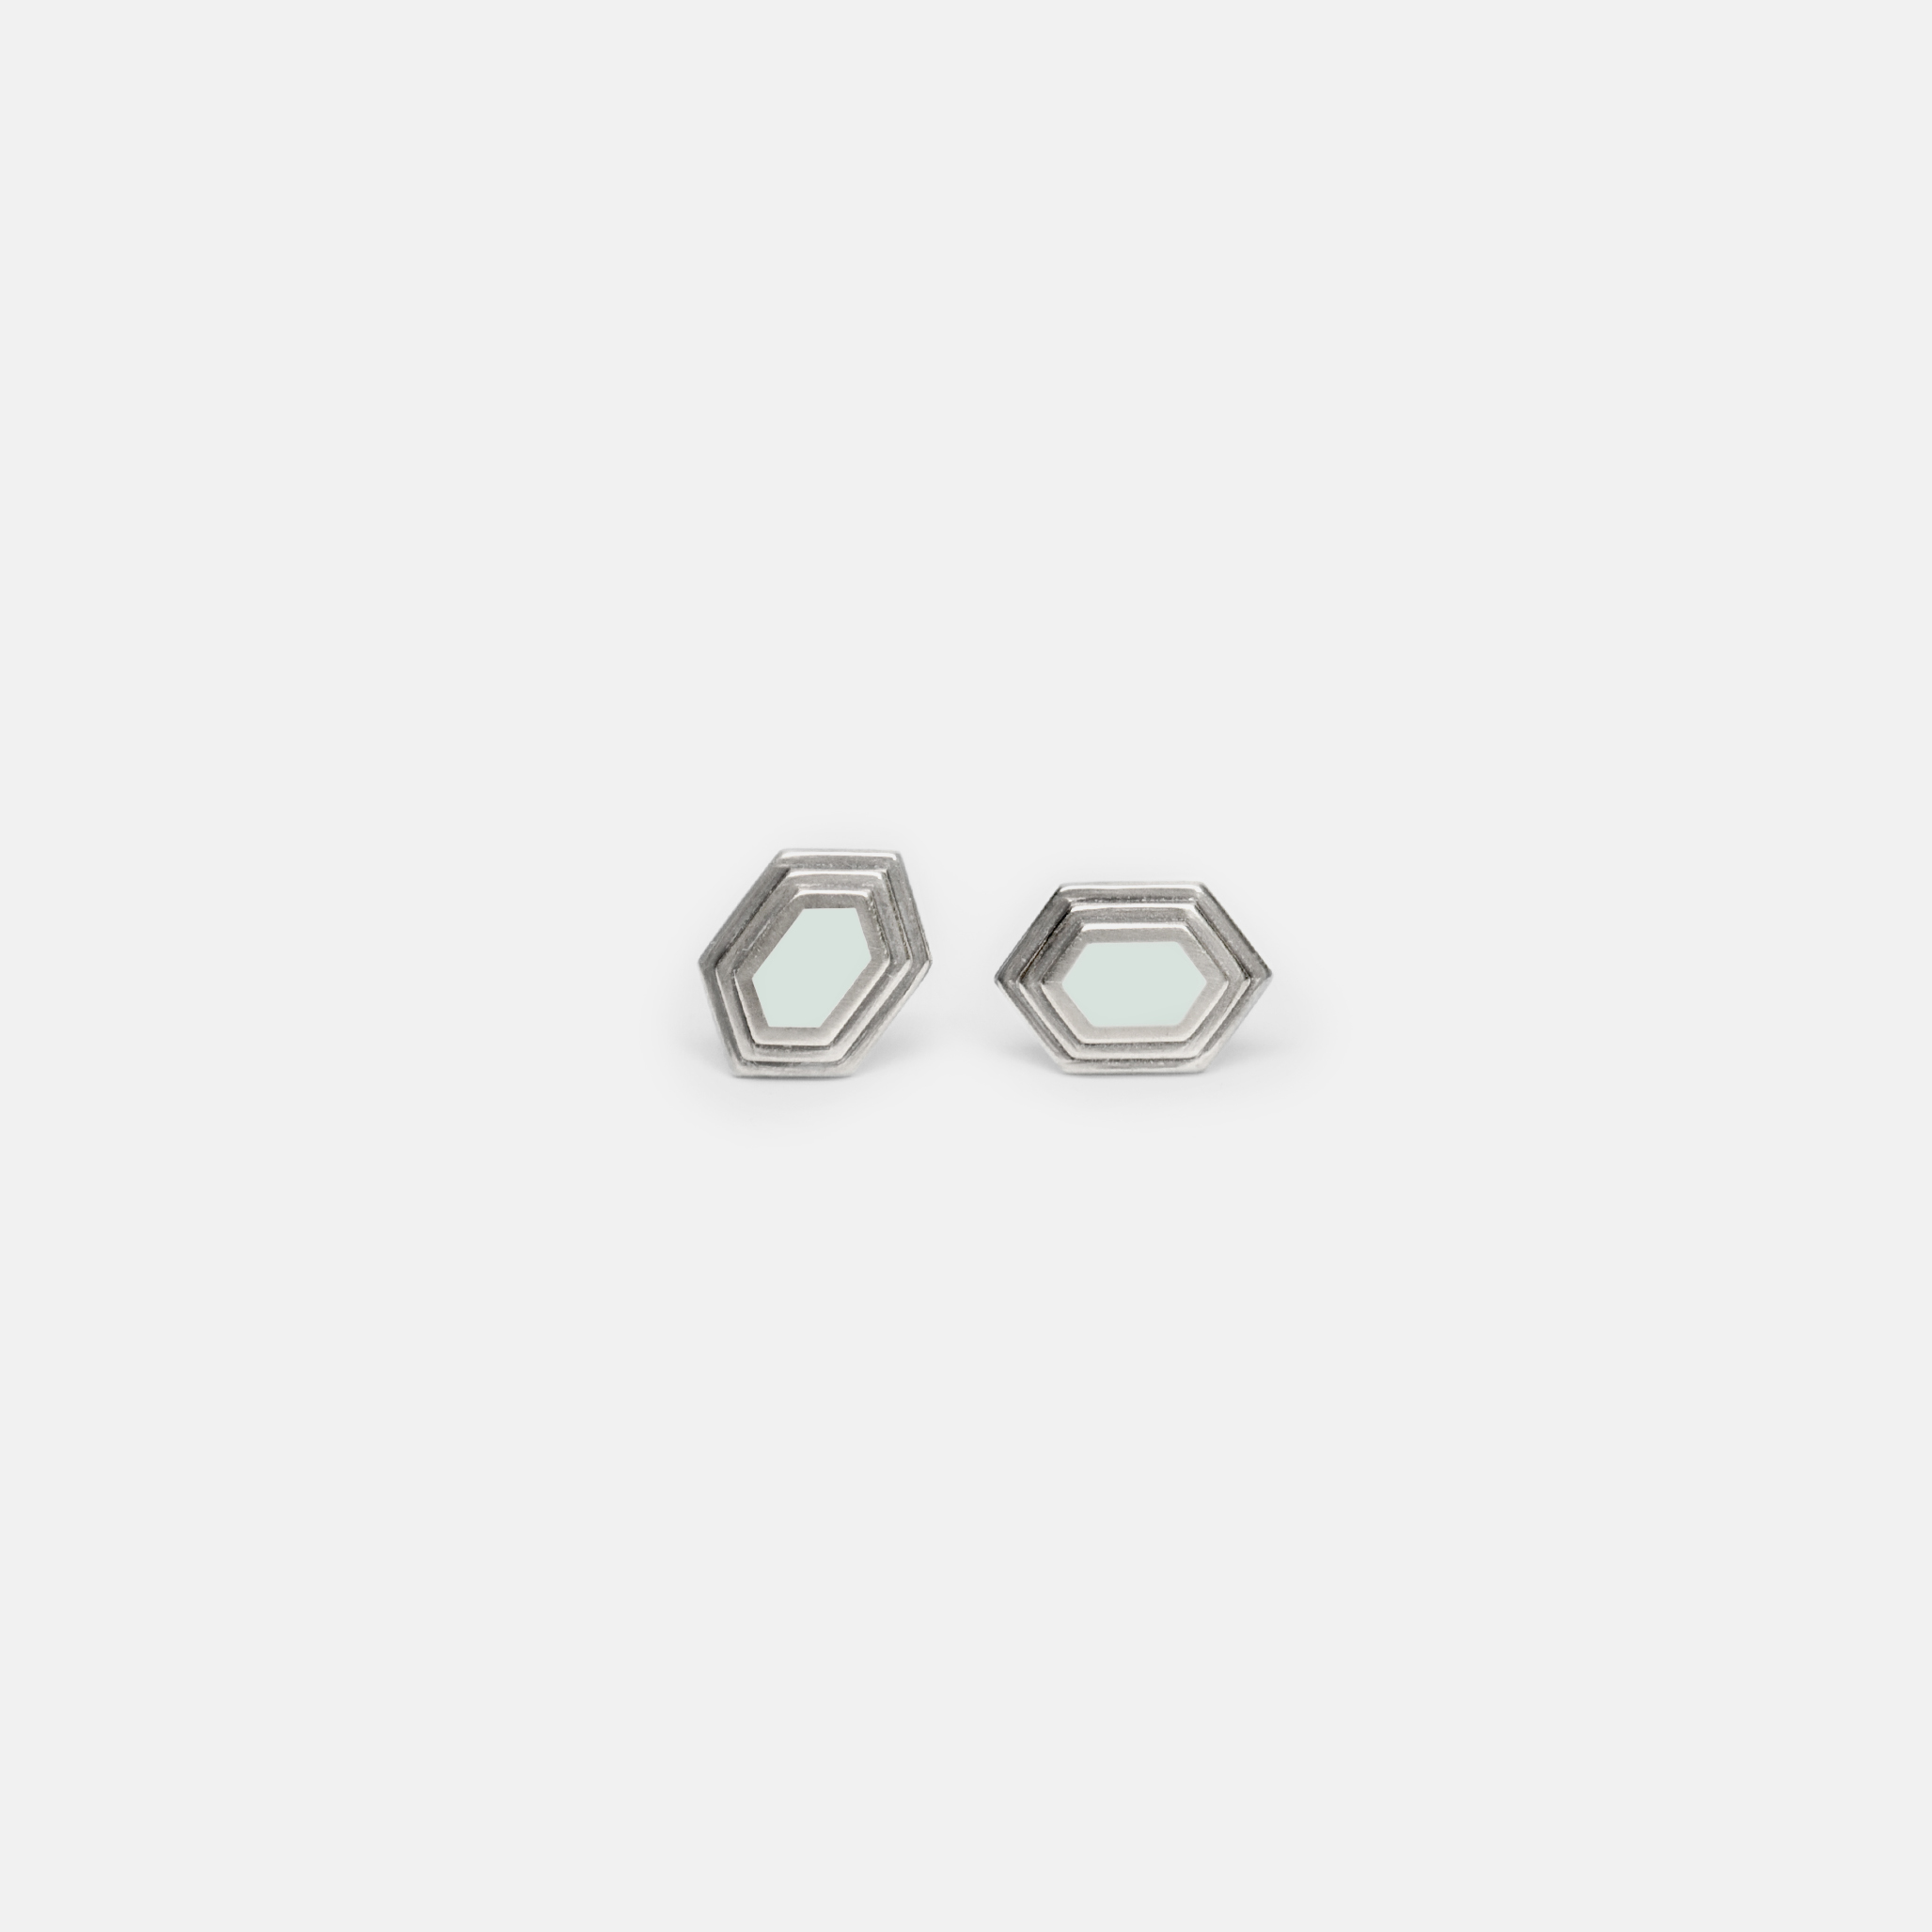 Off_White_Marisa_Lomonaco_Stepped_Stud_Earring_0004_Silver_Mint.jpg